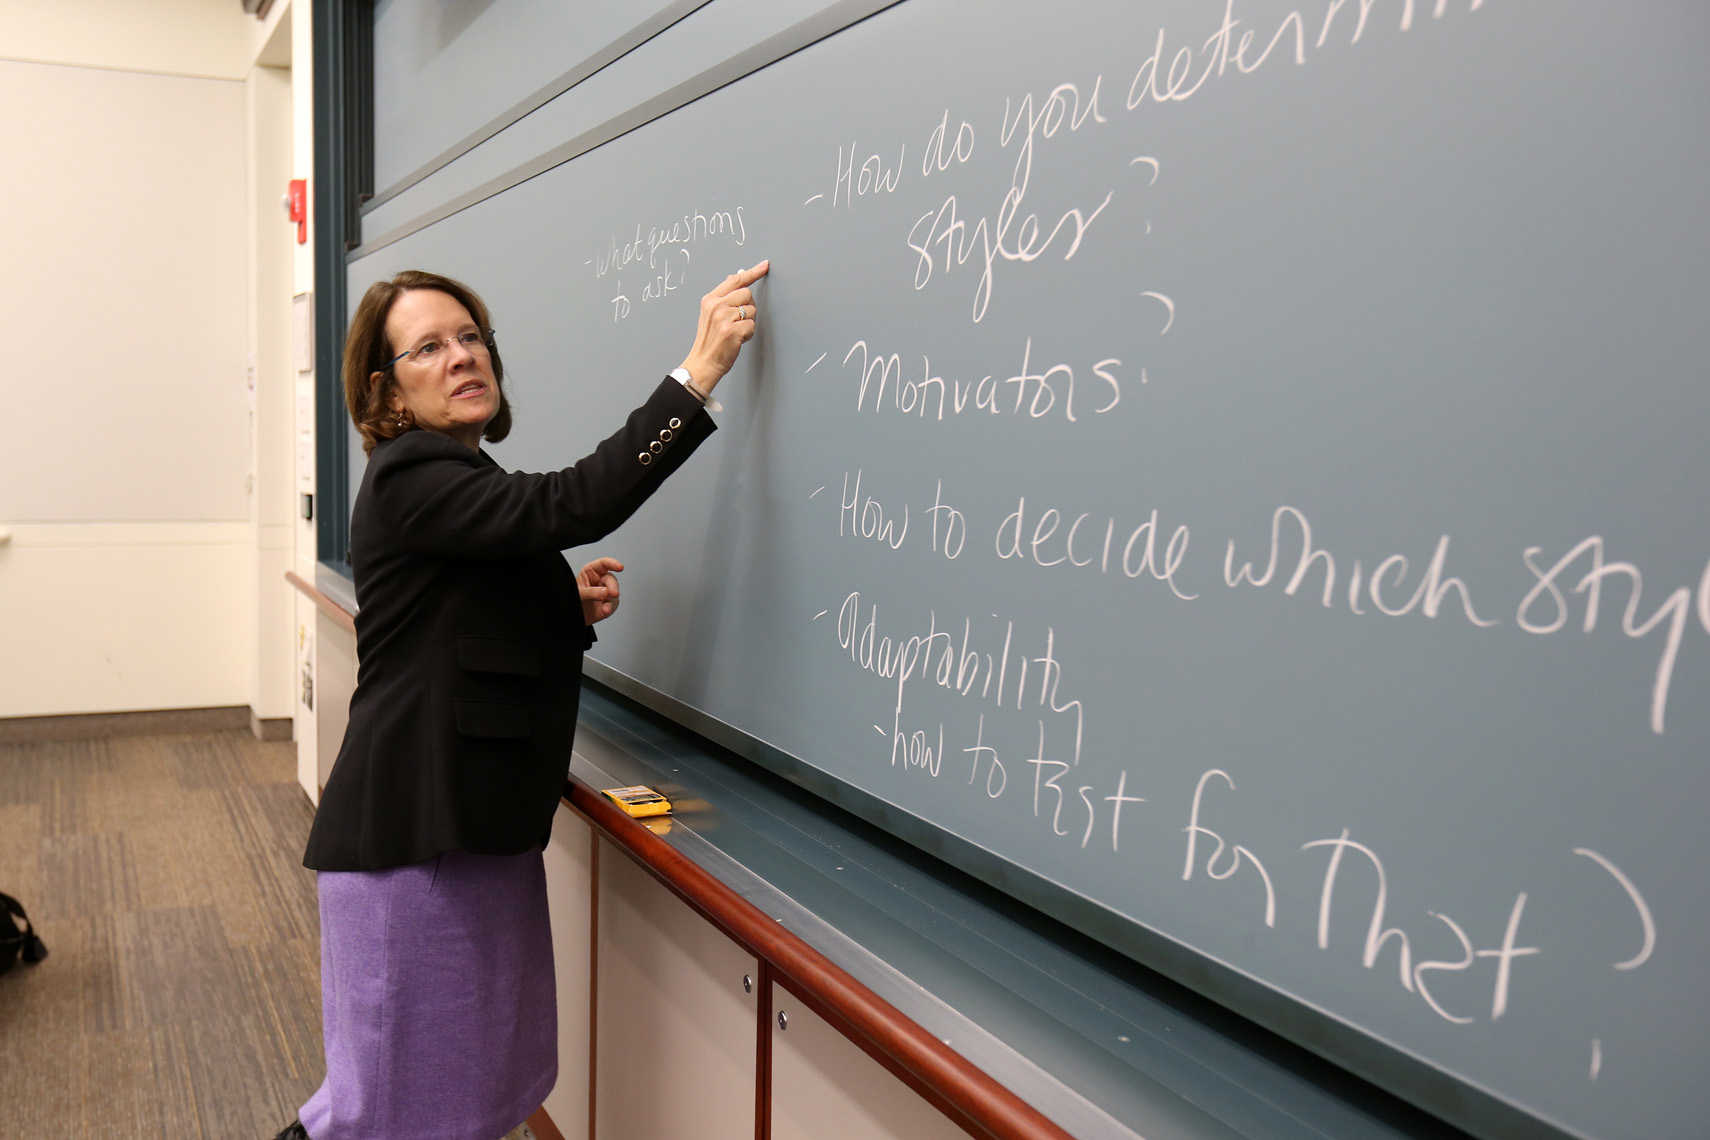 A professor uses the chalkboard to define a lesson during a class at Boston Univ.